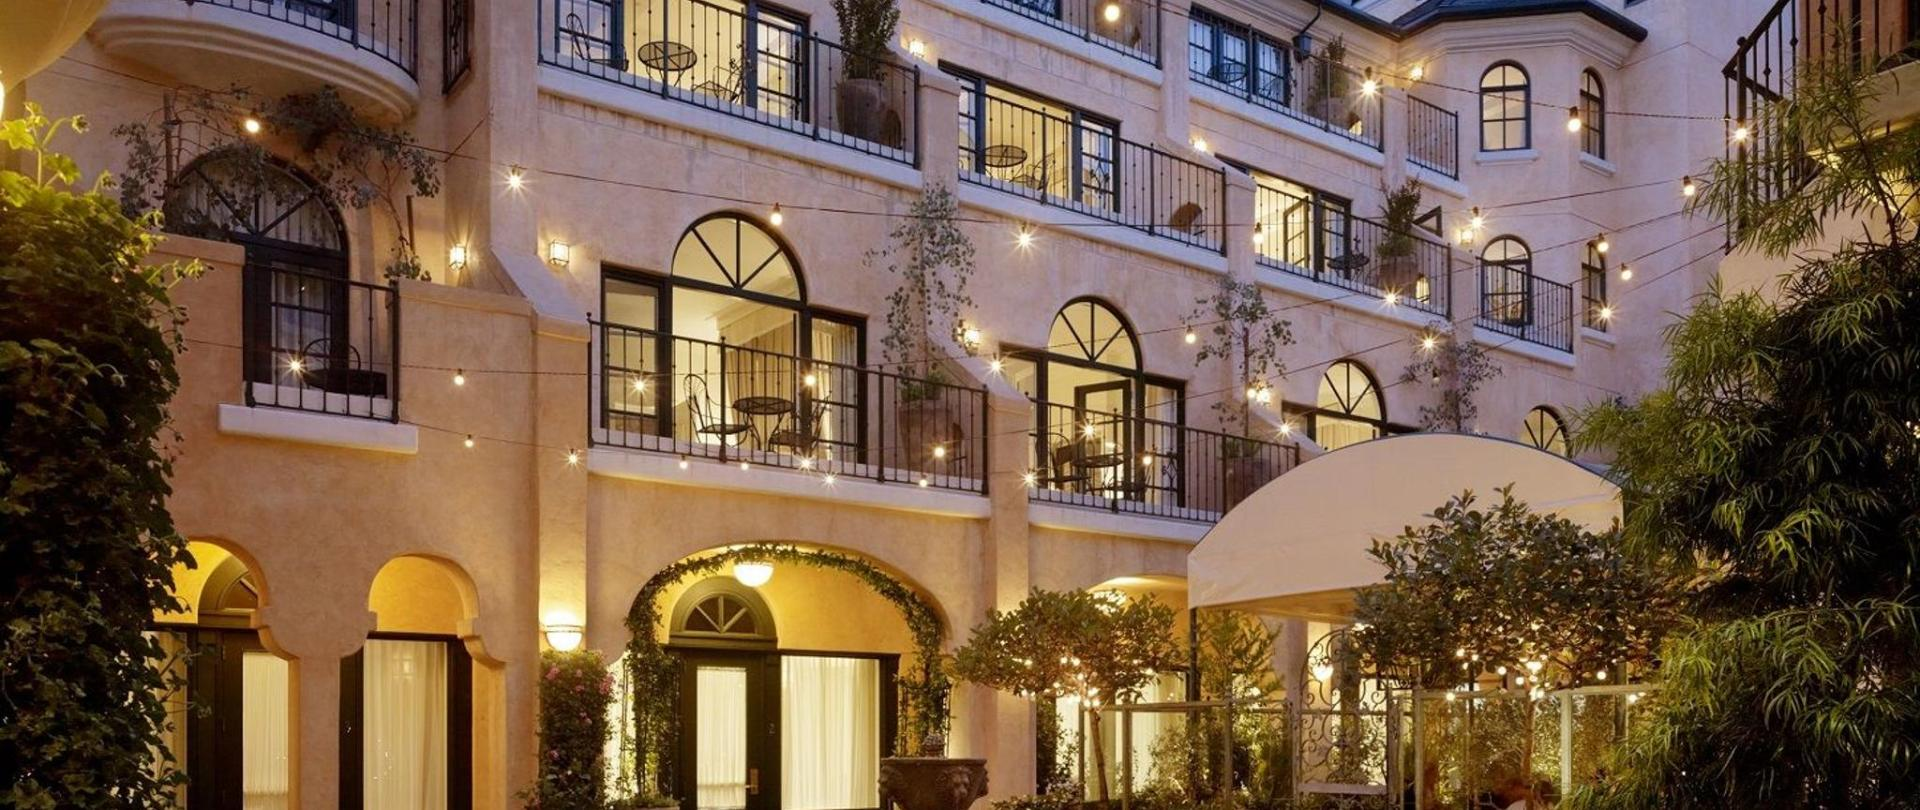 Garden Court | A Luxury Boutique Hotel in Downtown Palo Alto, CA ...